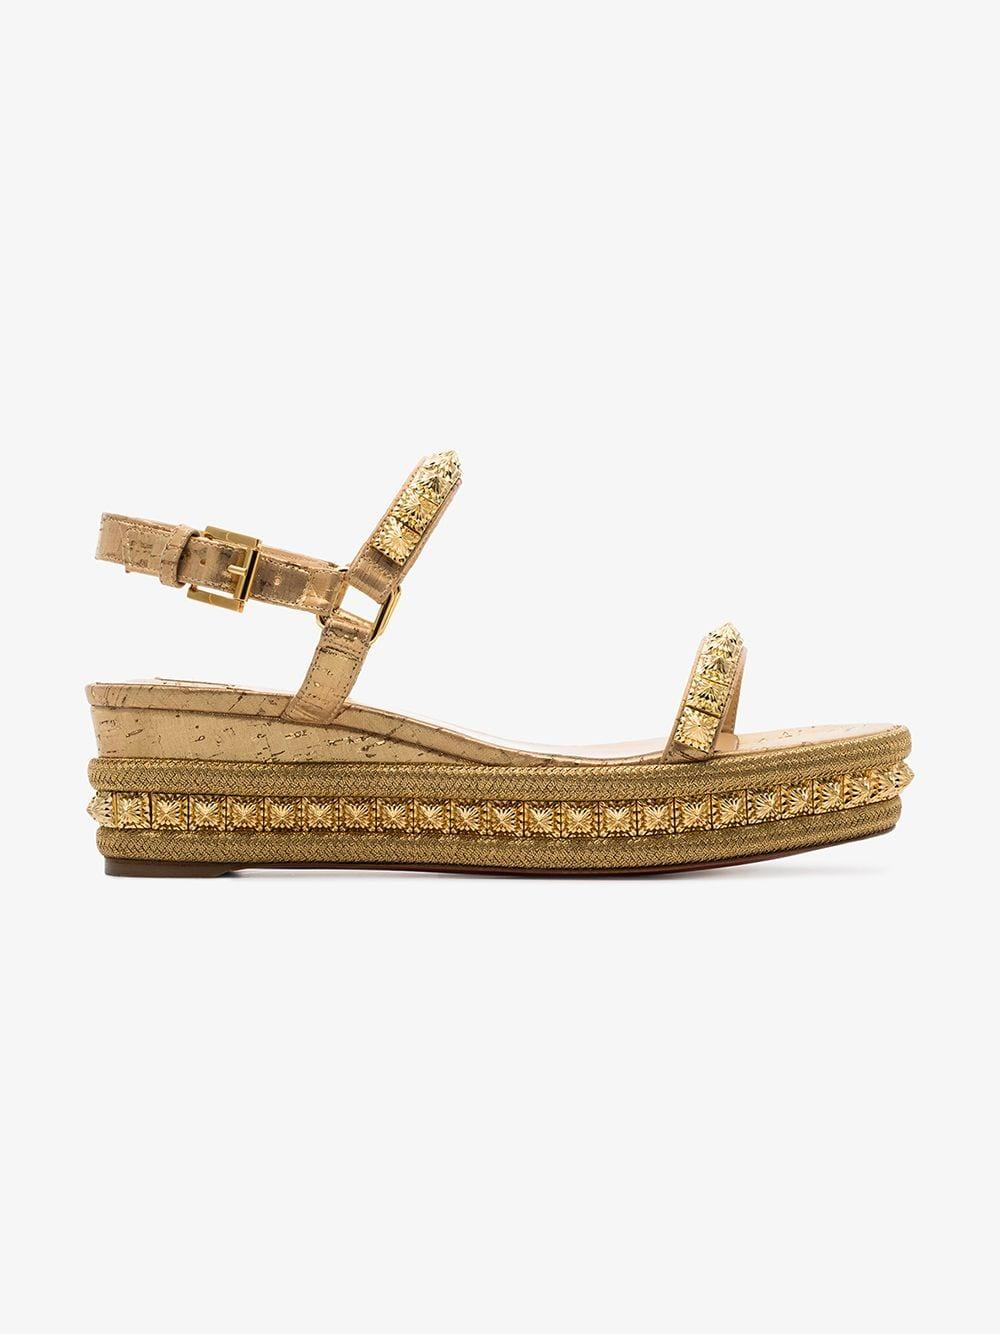 76a21ba0dd83 Christian Louboutin - Metallic Gold Tone Pyriams 60 Leather Wedge Sandals -  Lyst. View fullscreen